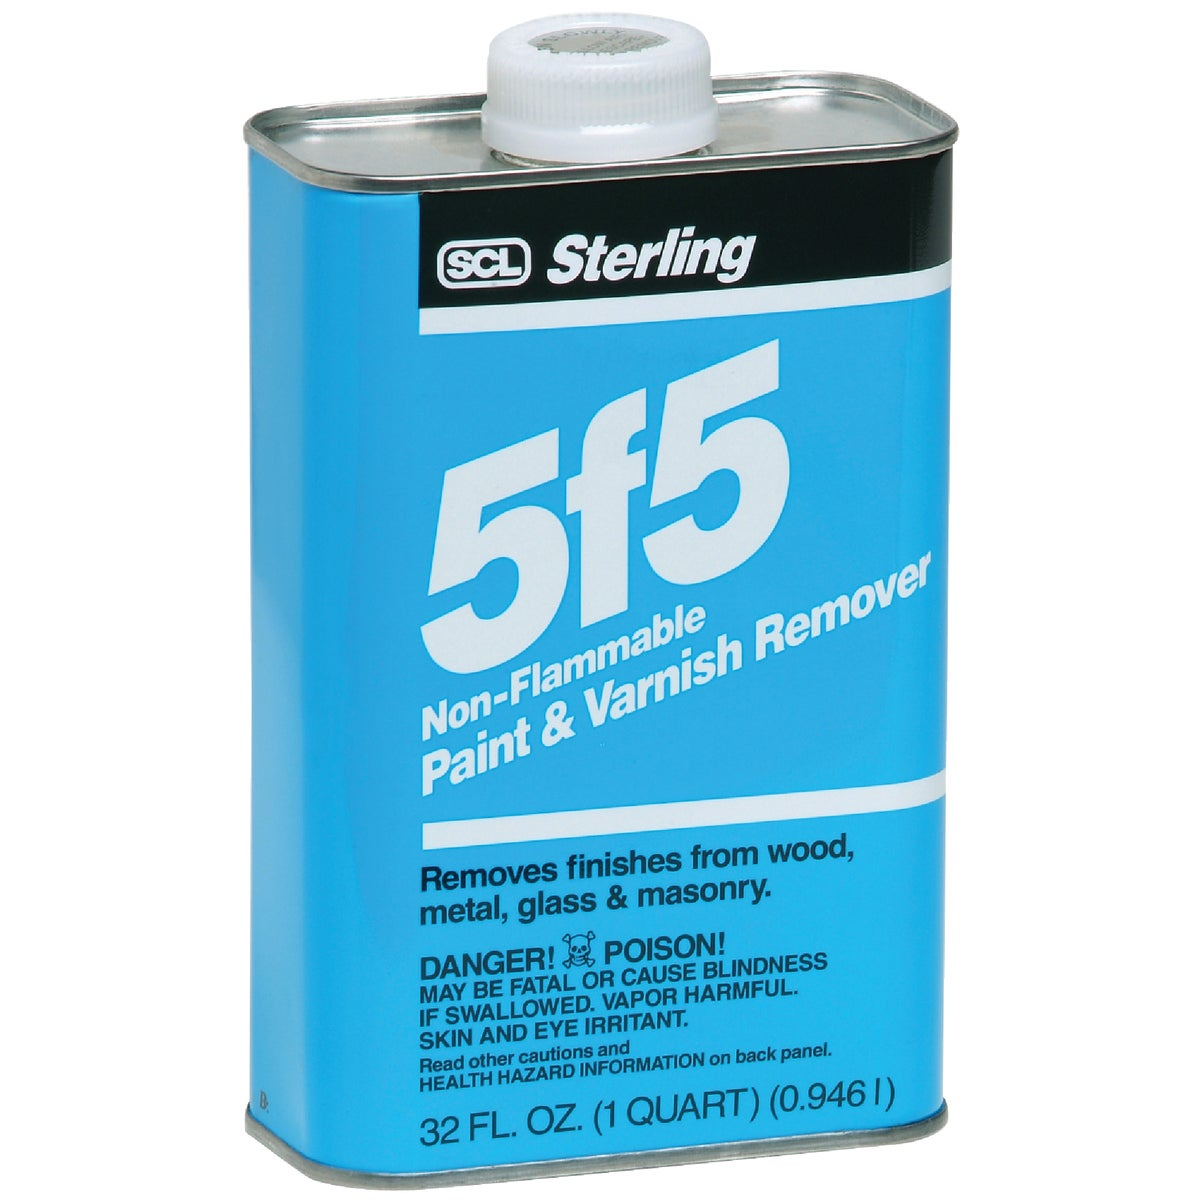 5F5 PAINT/VARNSH REMOVER - 050004 by Savogran Company